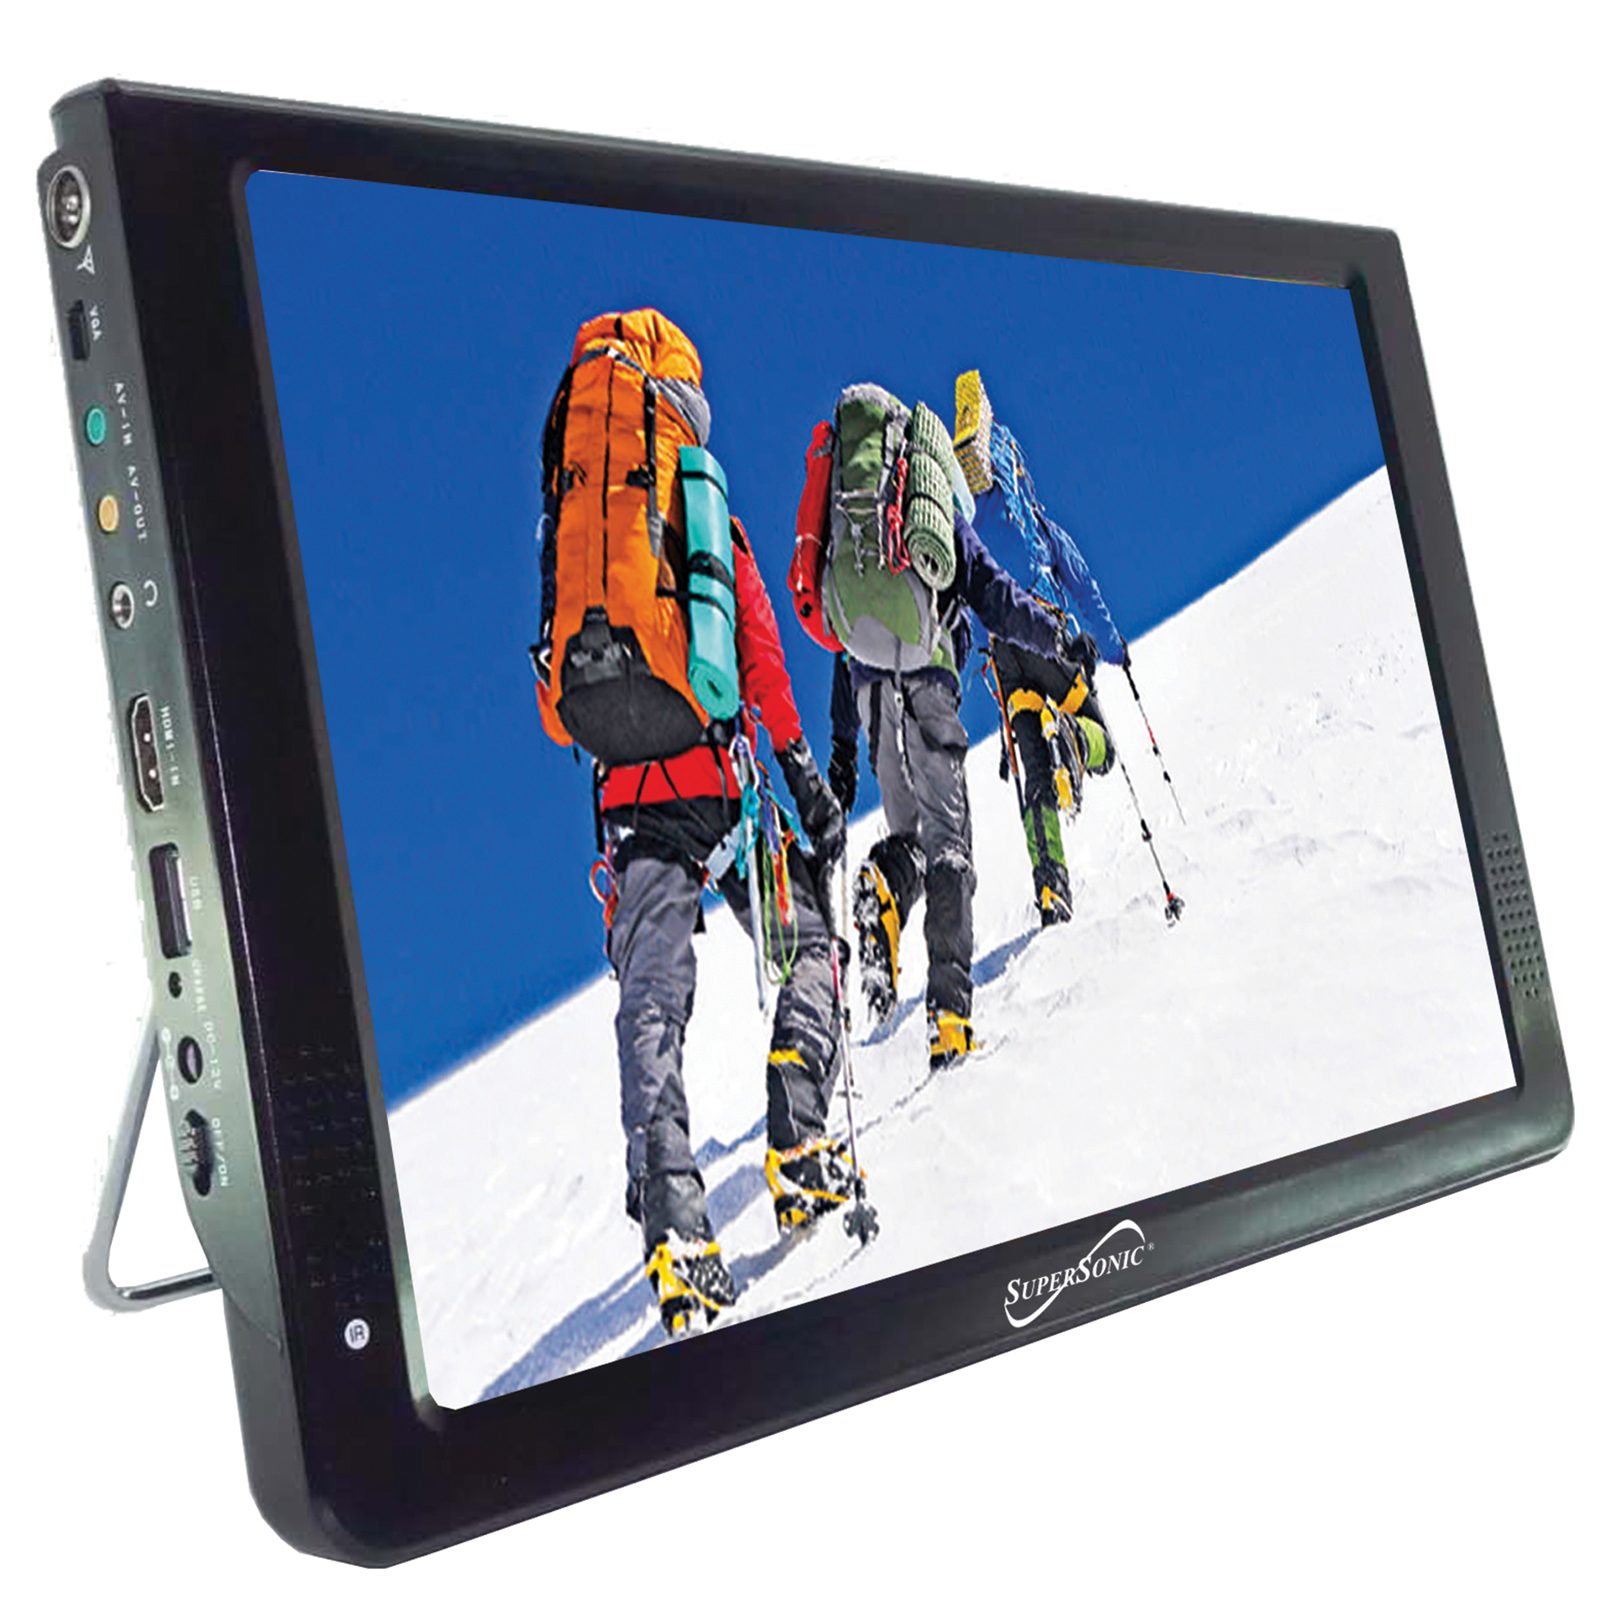 Supersonic 12 in. Portable LCD TV with USB & SD Inputs